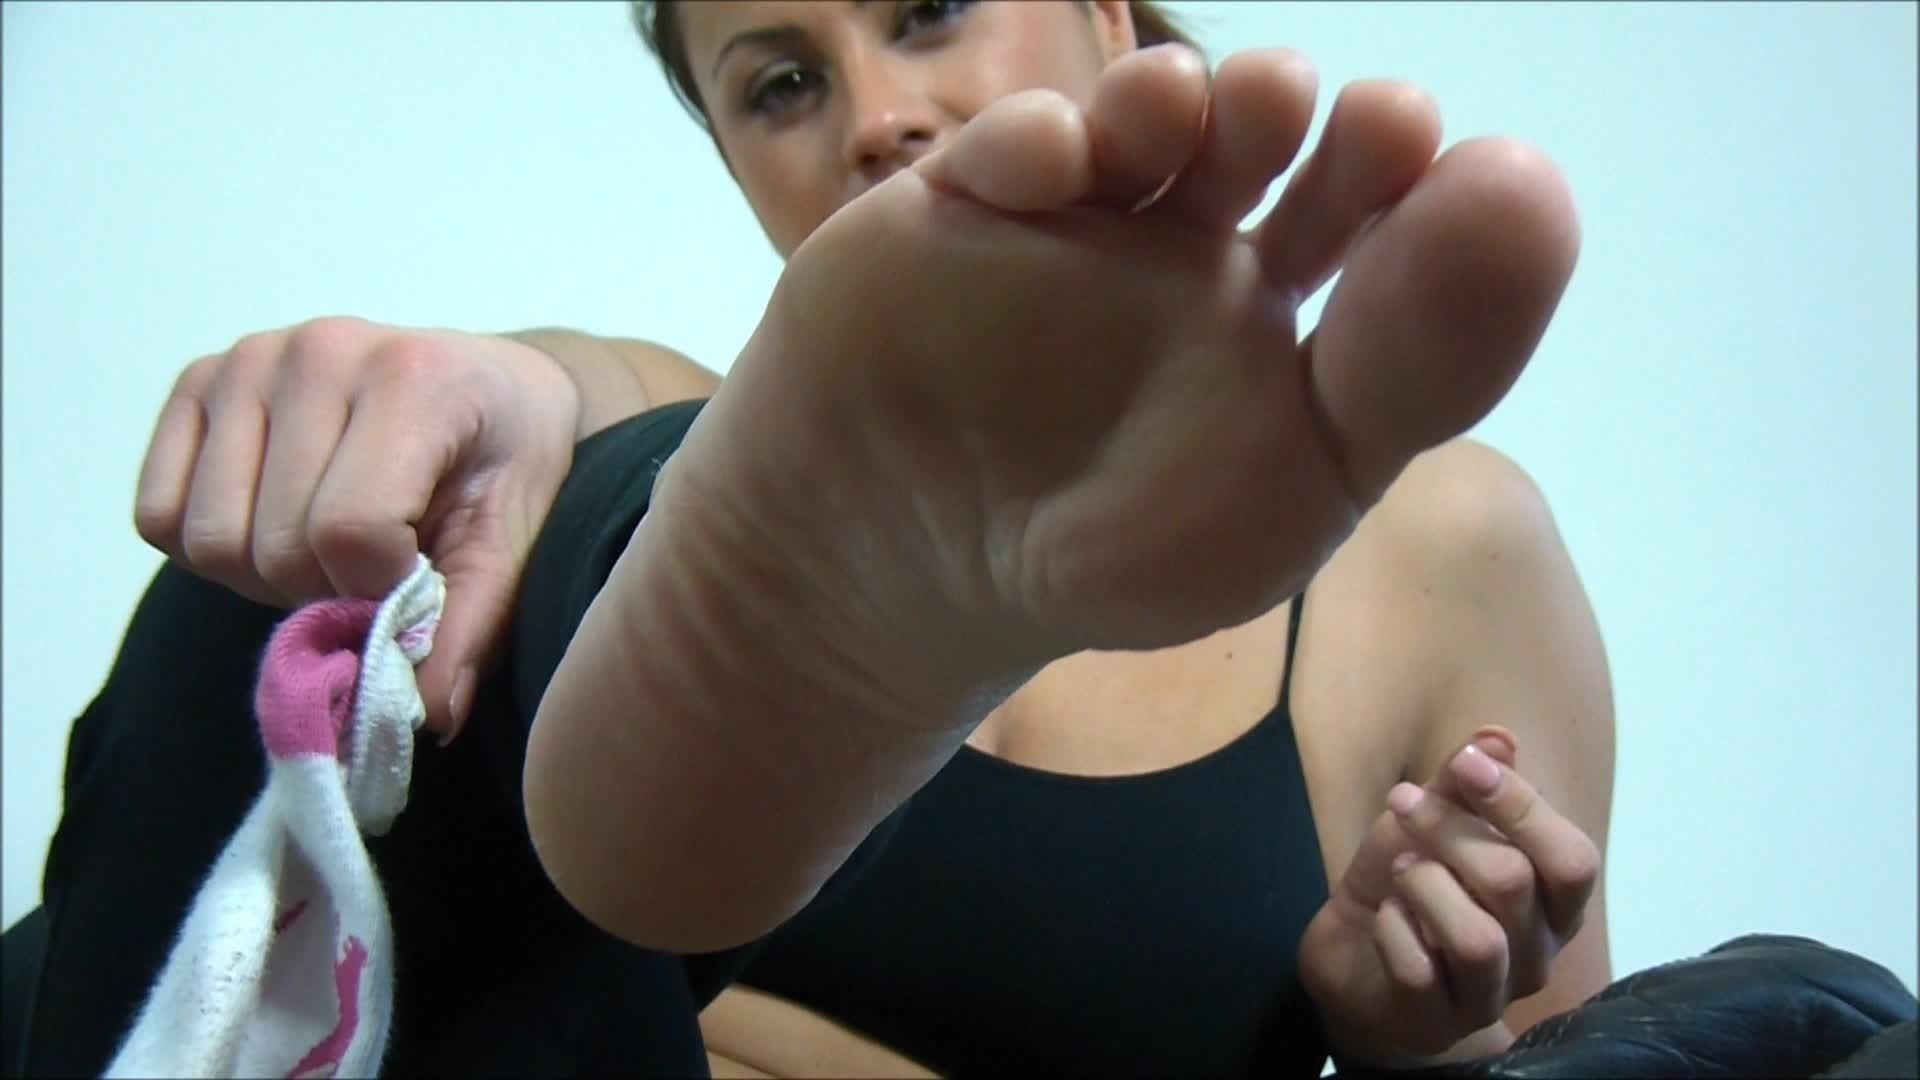 Sterne, wherever you are, what do you think of this?: http://www.wikifeet.com/Kandi_Kay